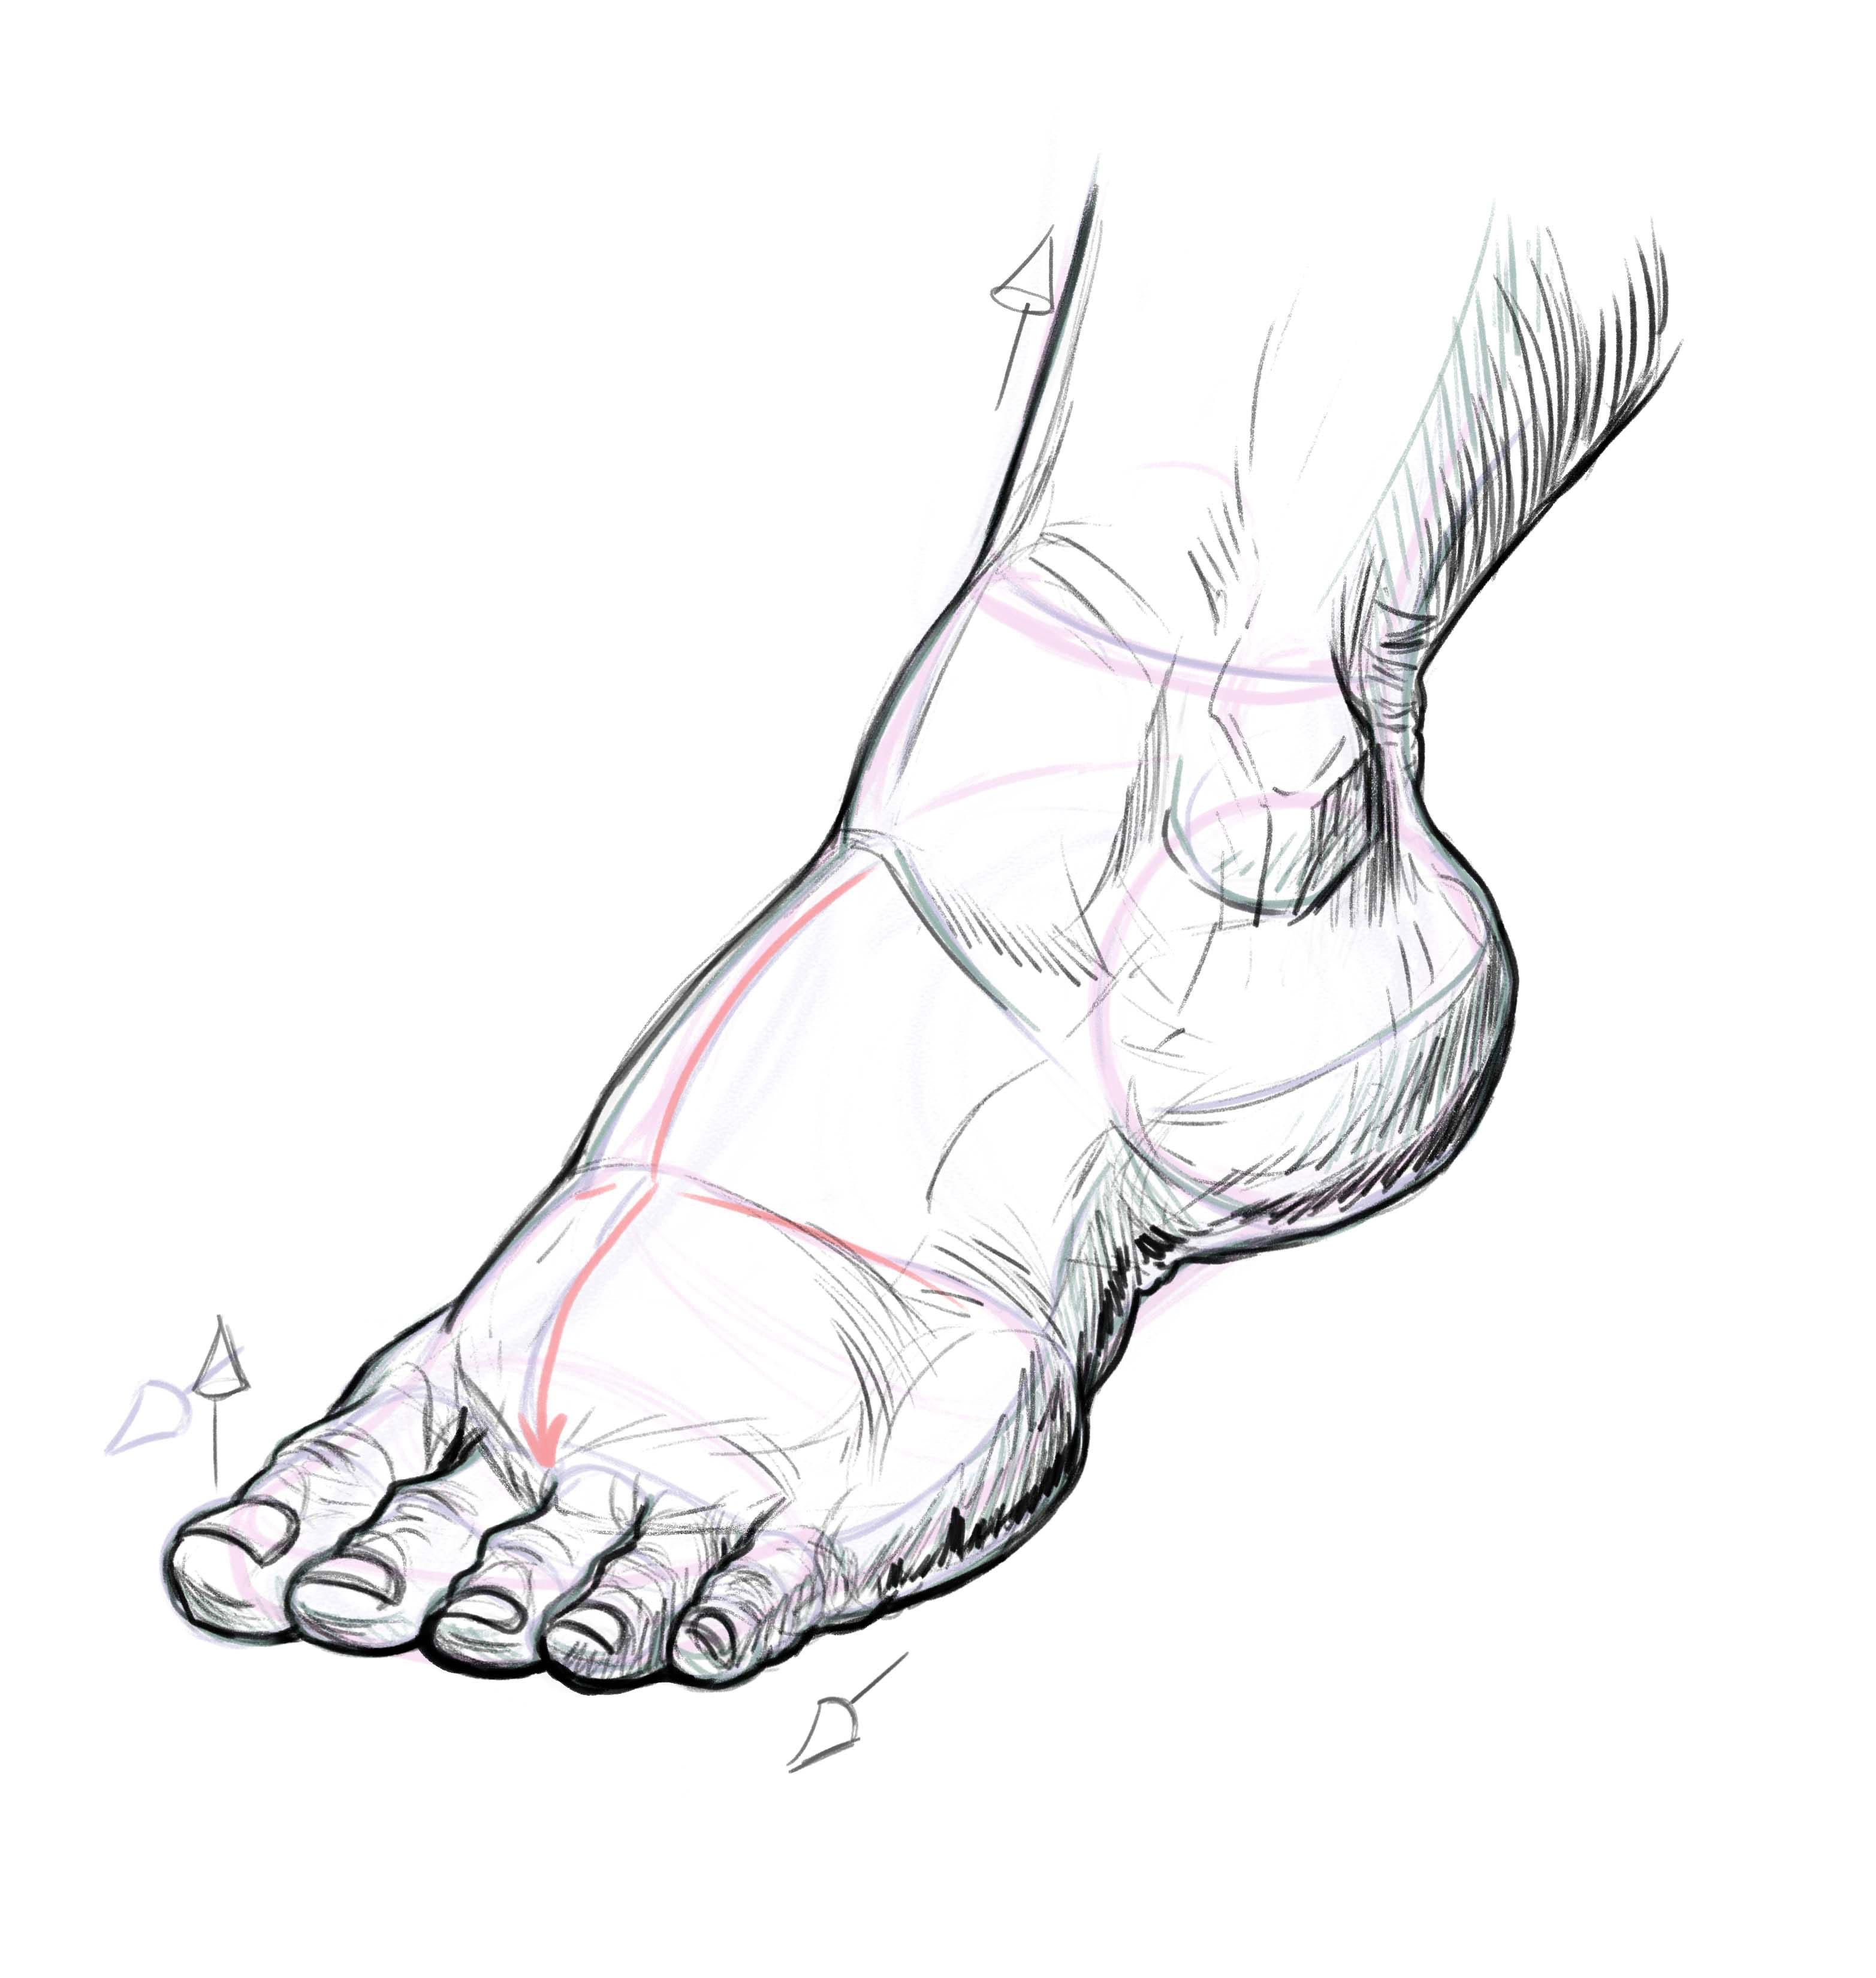 This is a graphic of Decisive Drawing On Feet